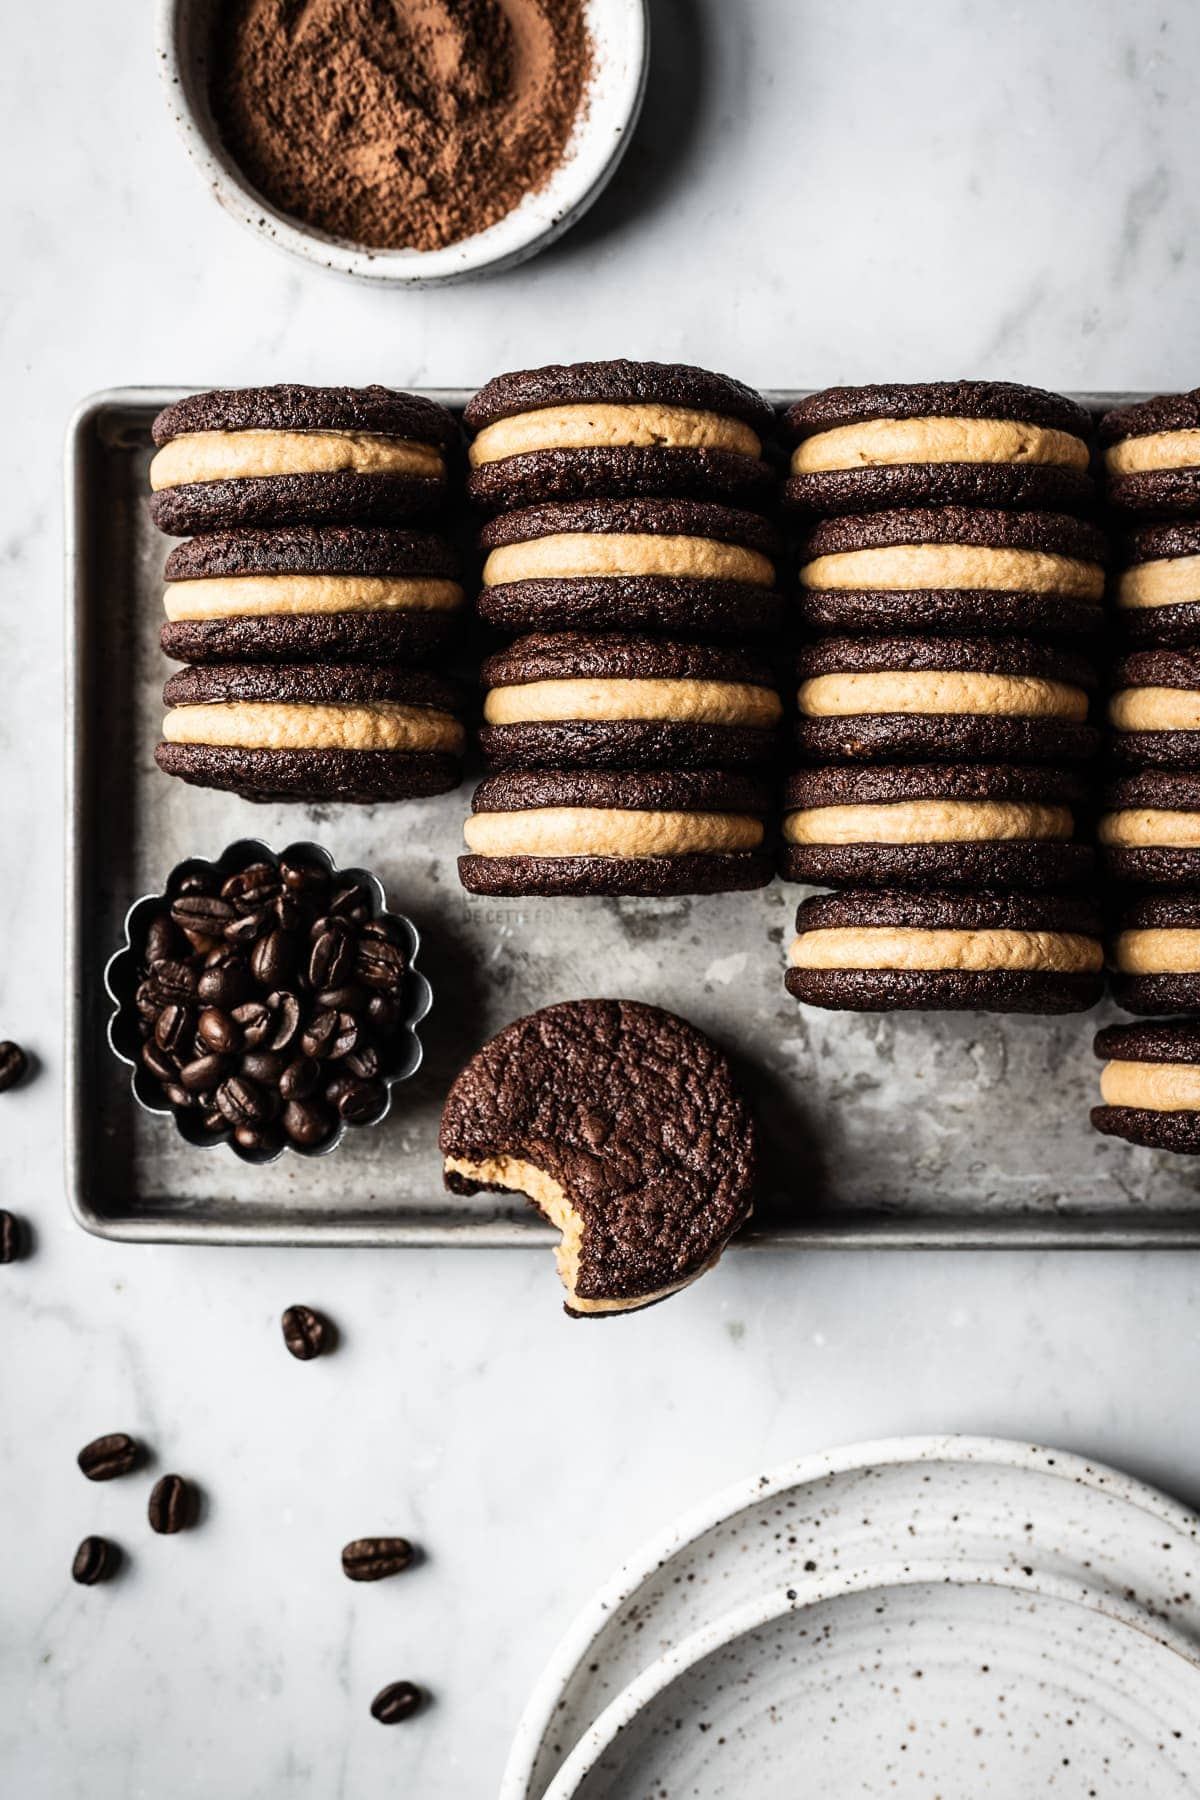 A silver metal cookie sheet holds four tidy rows of frosting filled sandwich cookies on end to show their centers. One is lying flat with a bite taken out of it. The cookie sheet is on a white marble surface. Two speckled white ceramic plates, a small fluted container of coffee beans, and a small white ceramic bowl of cocoa powder are on the border of the image.